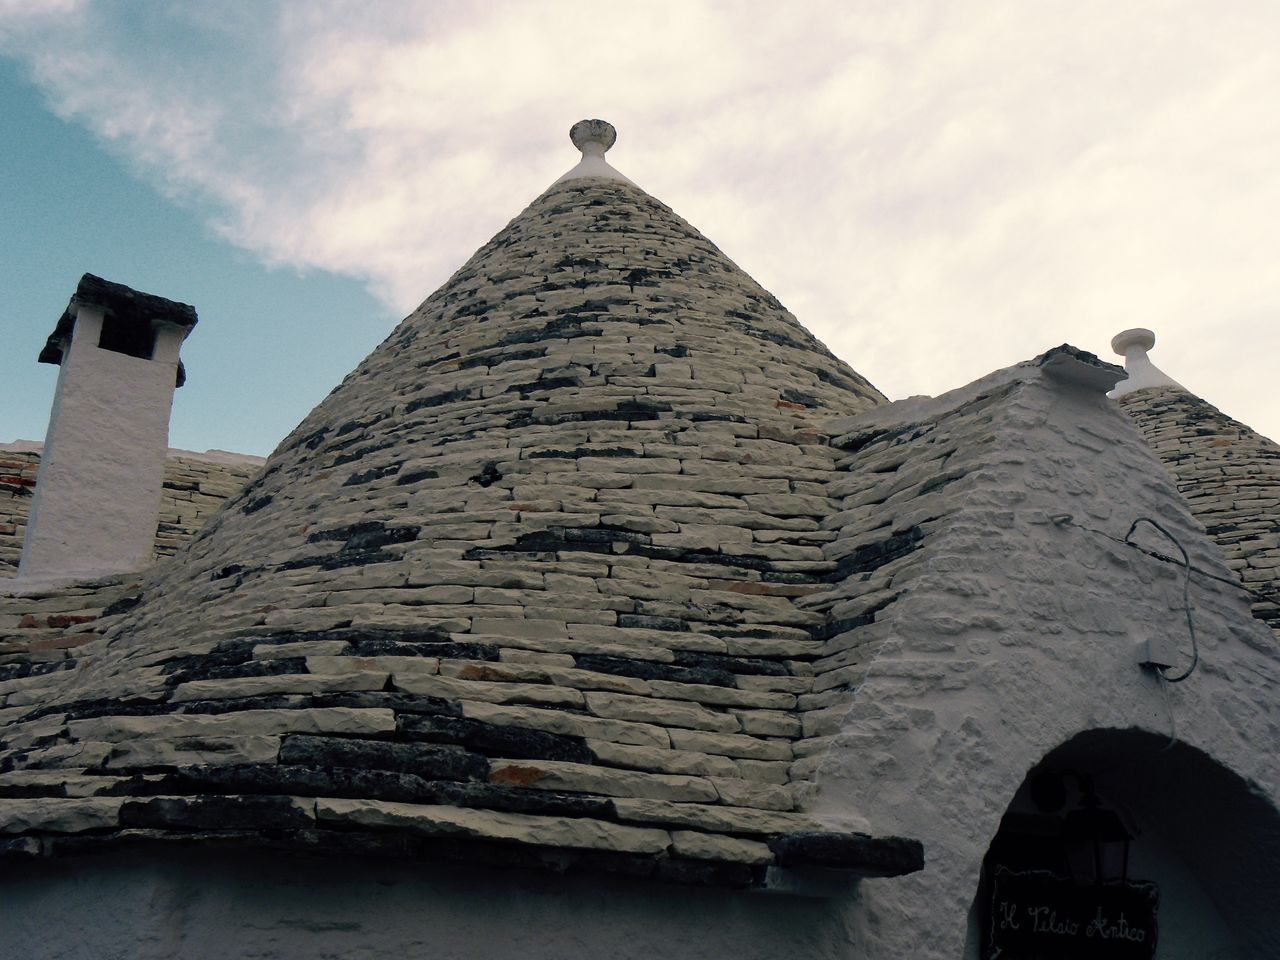 Alberobello Alberobello - Puglia Alberobello City Alberobellocity Alberobelloexperience Alberobellophotocontest Architecture Building Exterior Built Structure Day Outdoors Break The Mold Art Is Everywhere TCPM EyeEmNewHere The Architect - 2017 EyeEm Awards